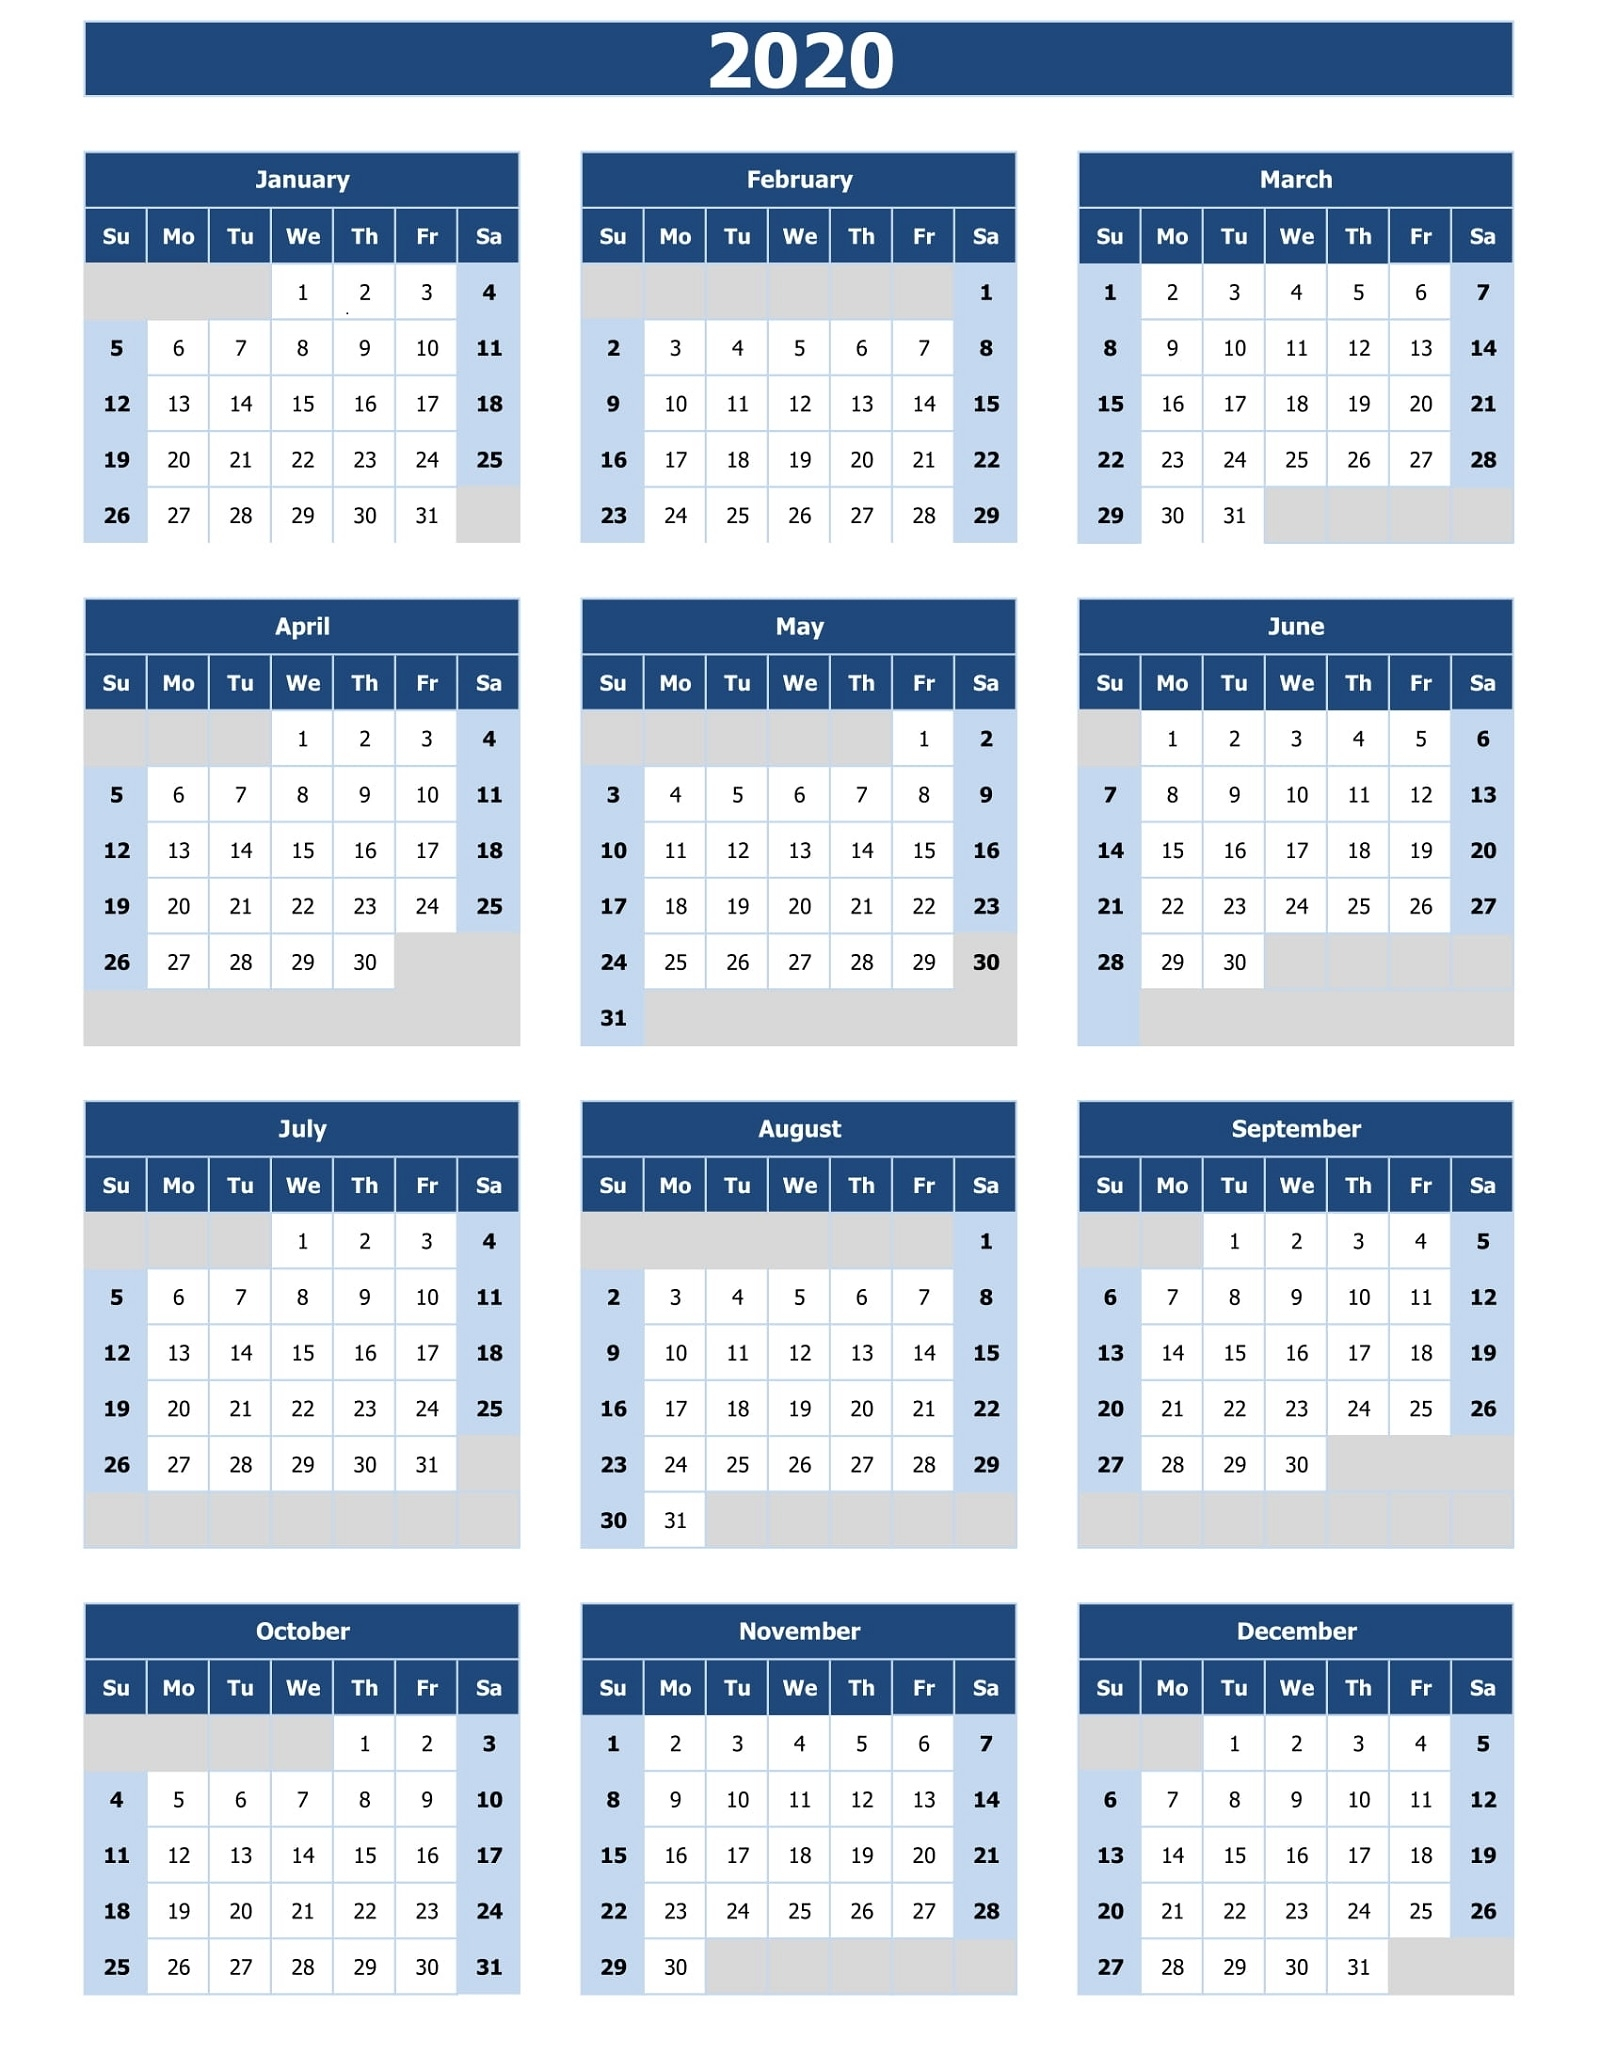 Free 2020 Calendar To Print | 101 Activity in Print Free2020 Calendars Without Downloading